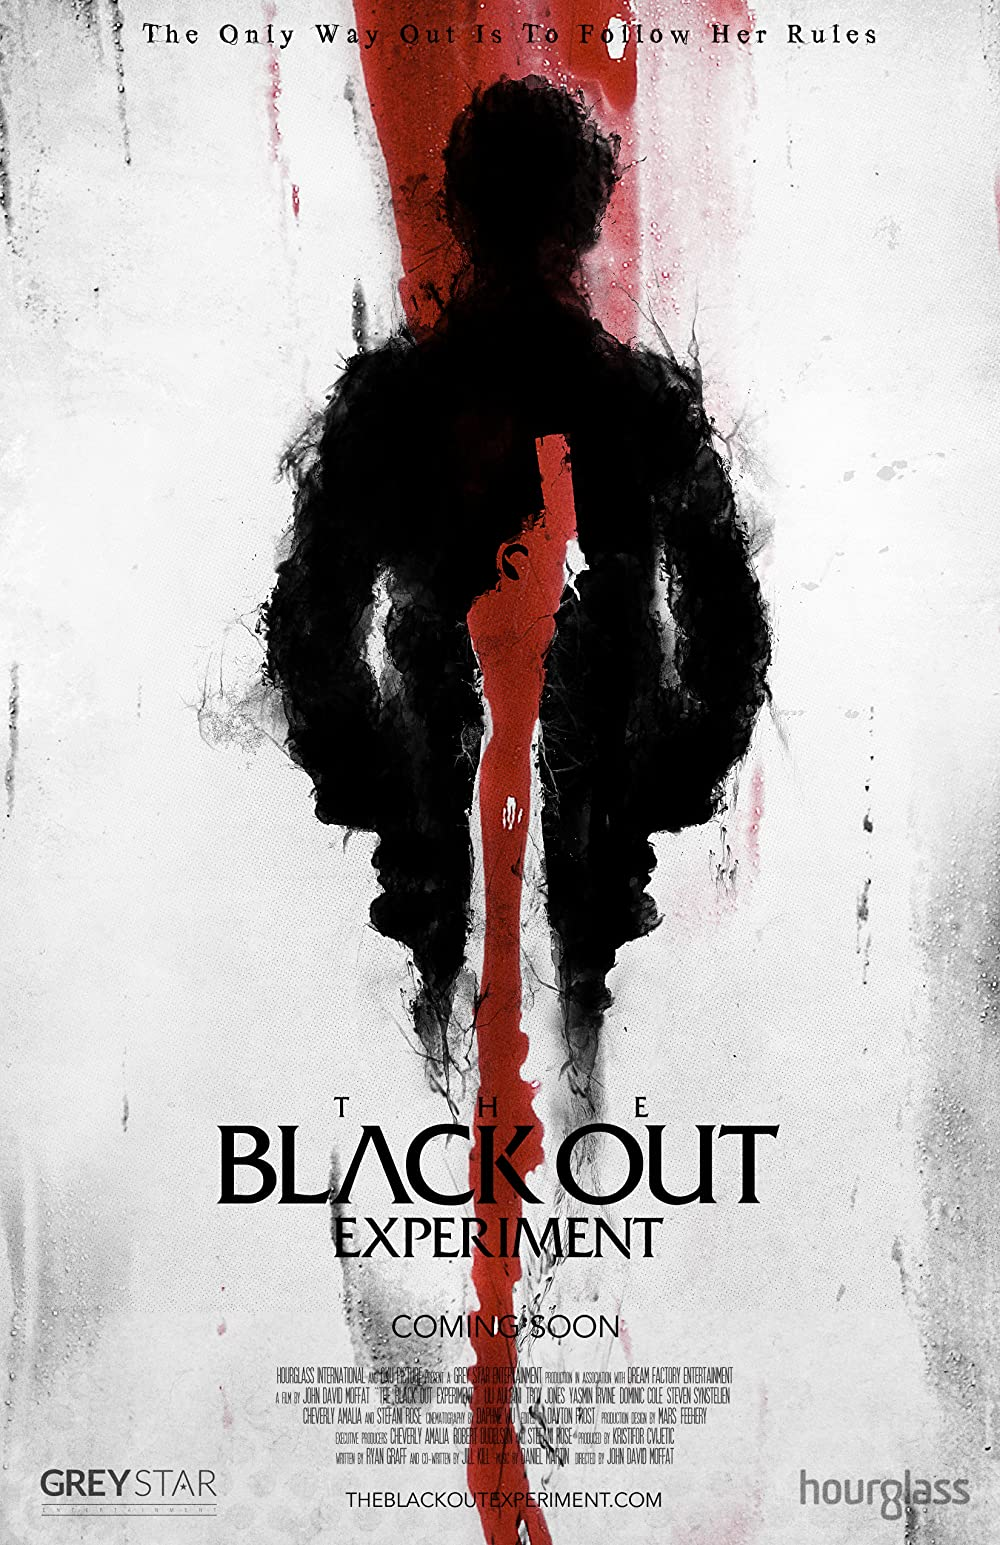 Download The Blackout Experiment (2021) Bengali Dubbed (Voice Over) WEBRip 720p [Full Movie] 1XBET Full Movie Online On 1xcinema.com